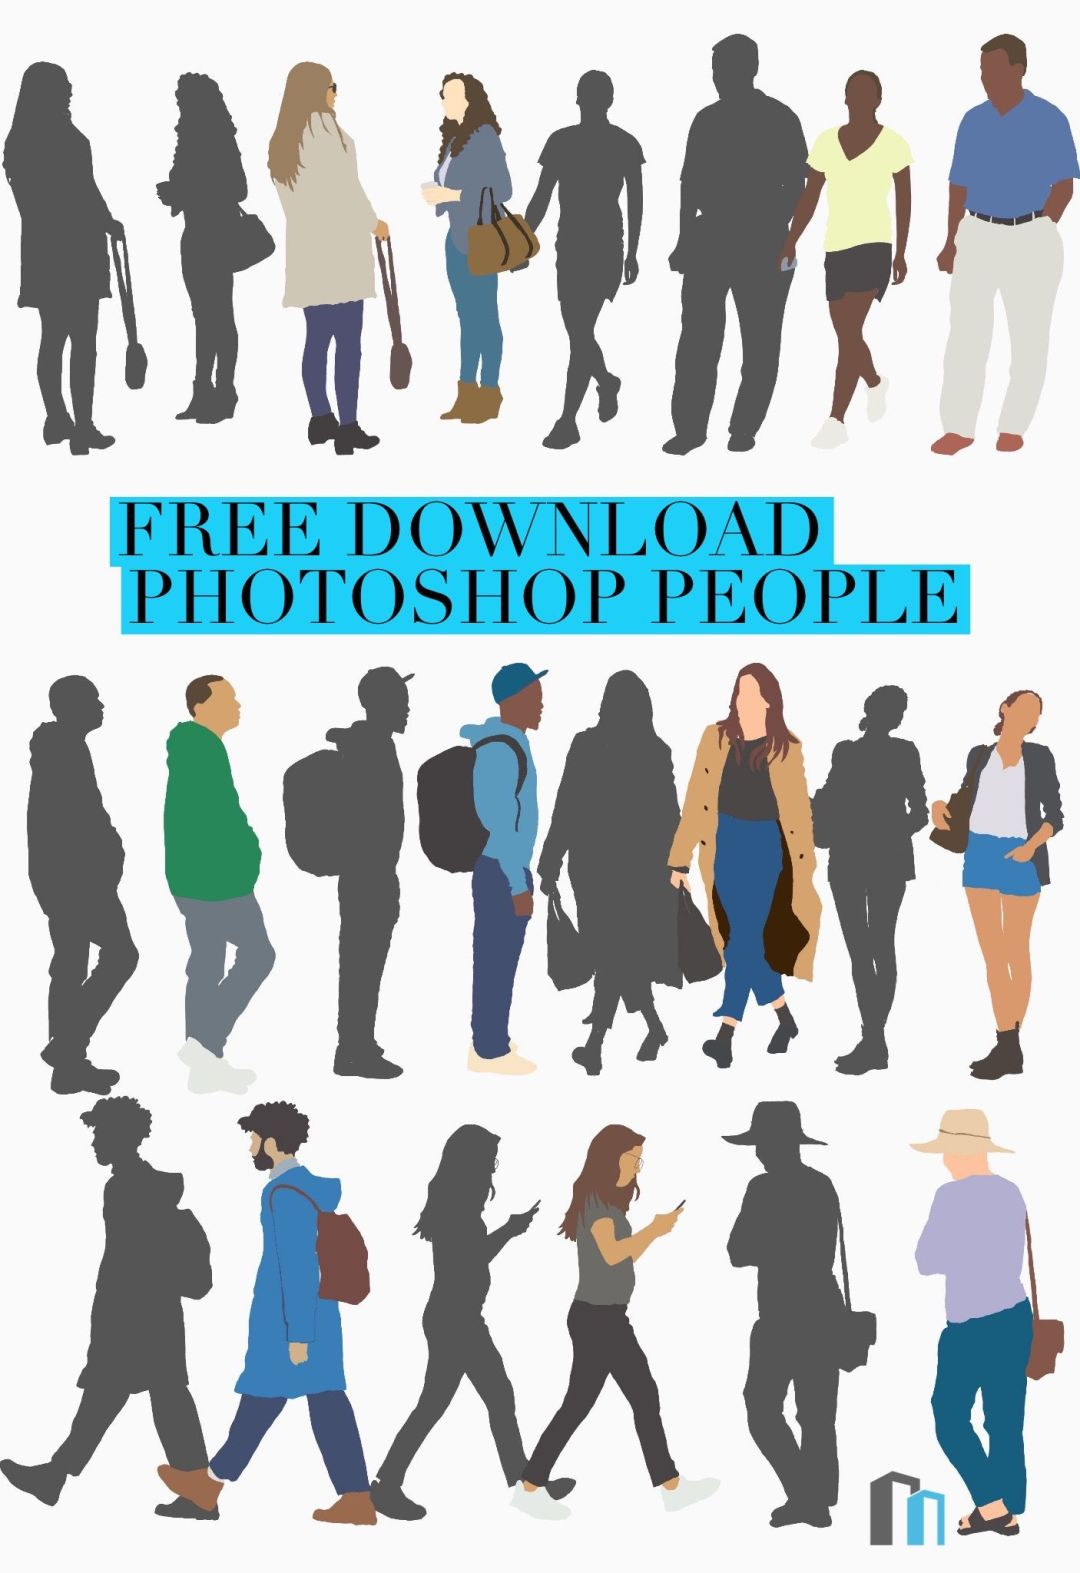 Free People Download 4_